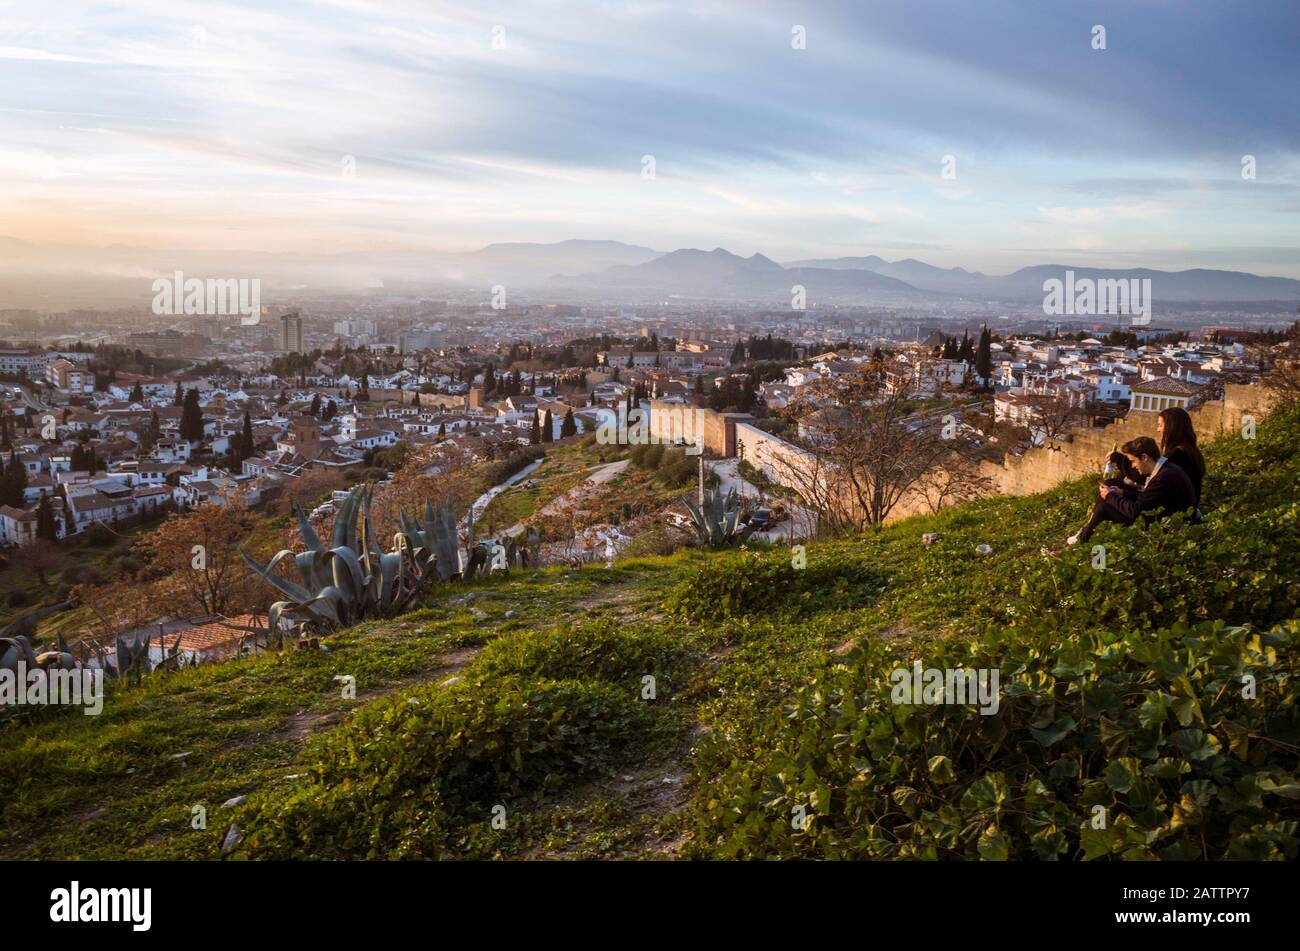 Granada, Spain - January 17th, 2020 : A couple looks at Granada at sunset by the Albaicin city walls at the San Miguel alto viewpoint. Stock Photo